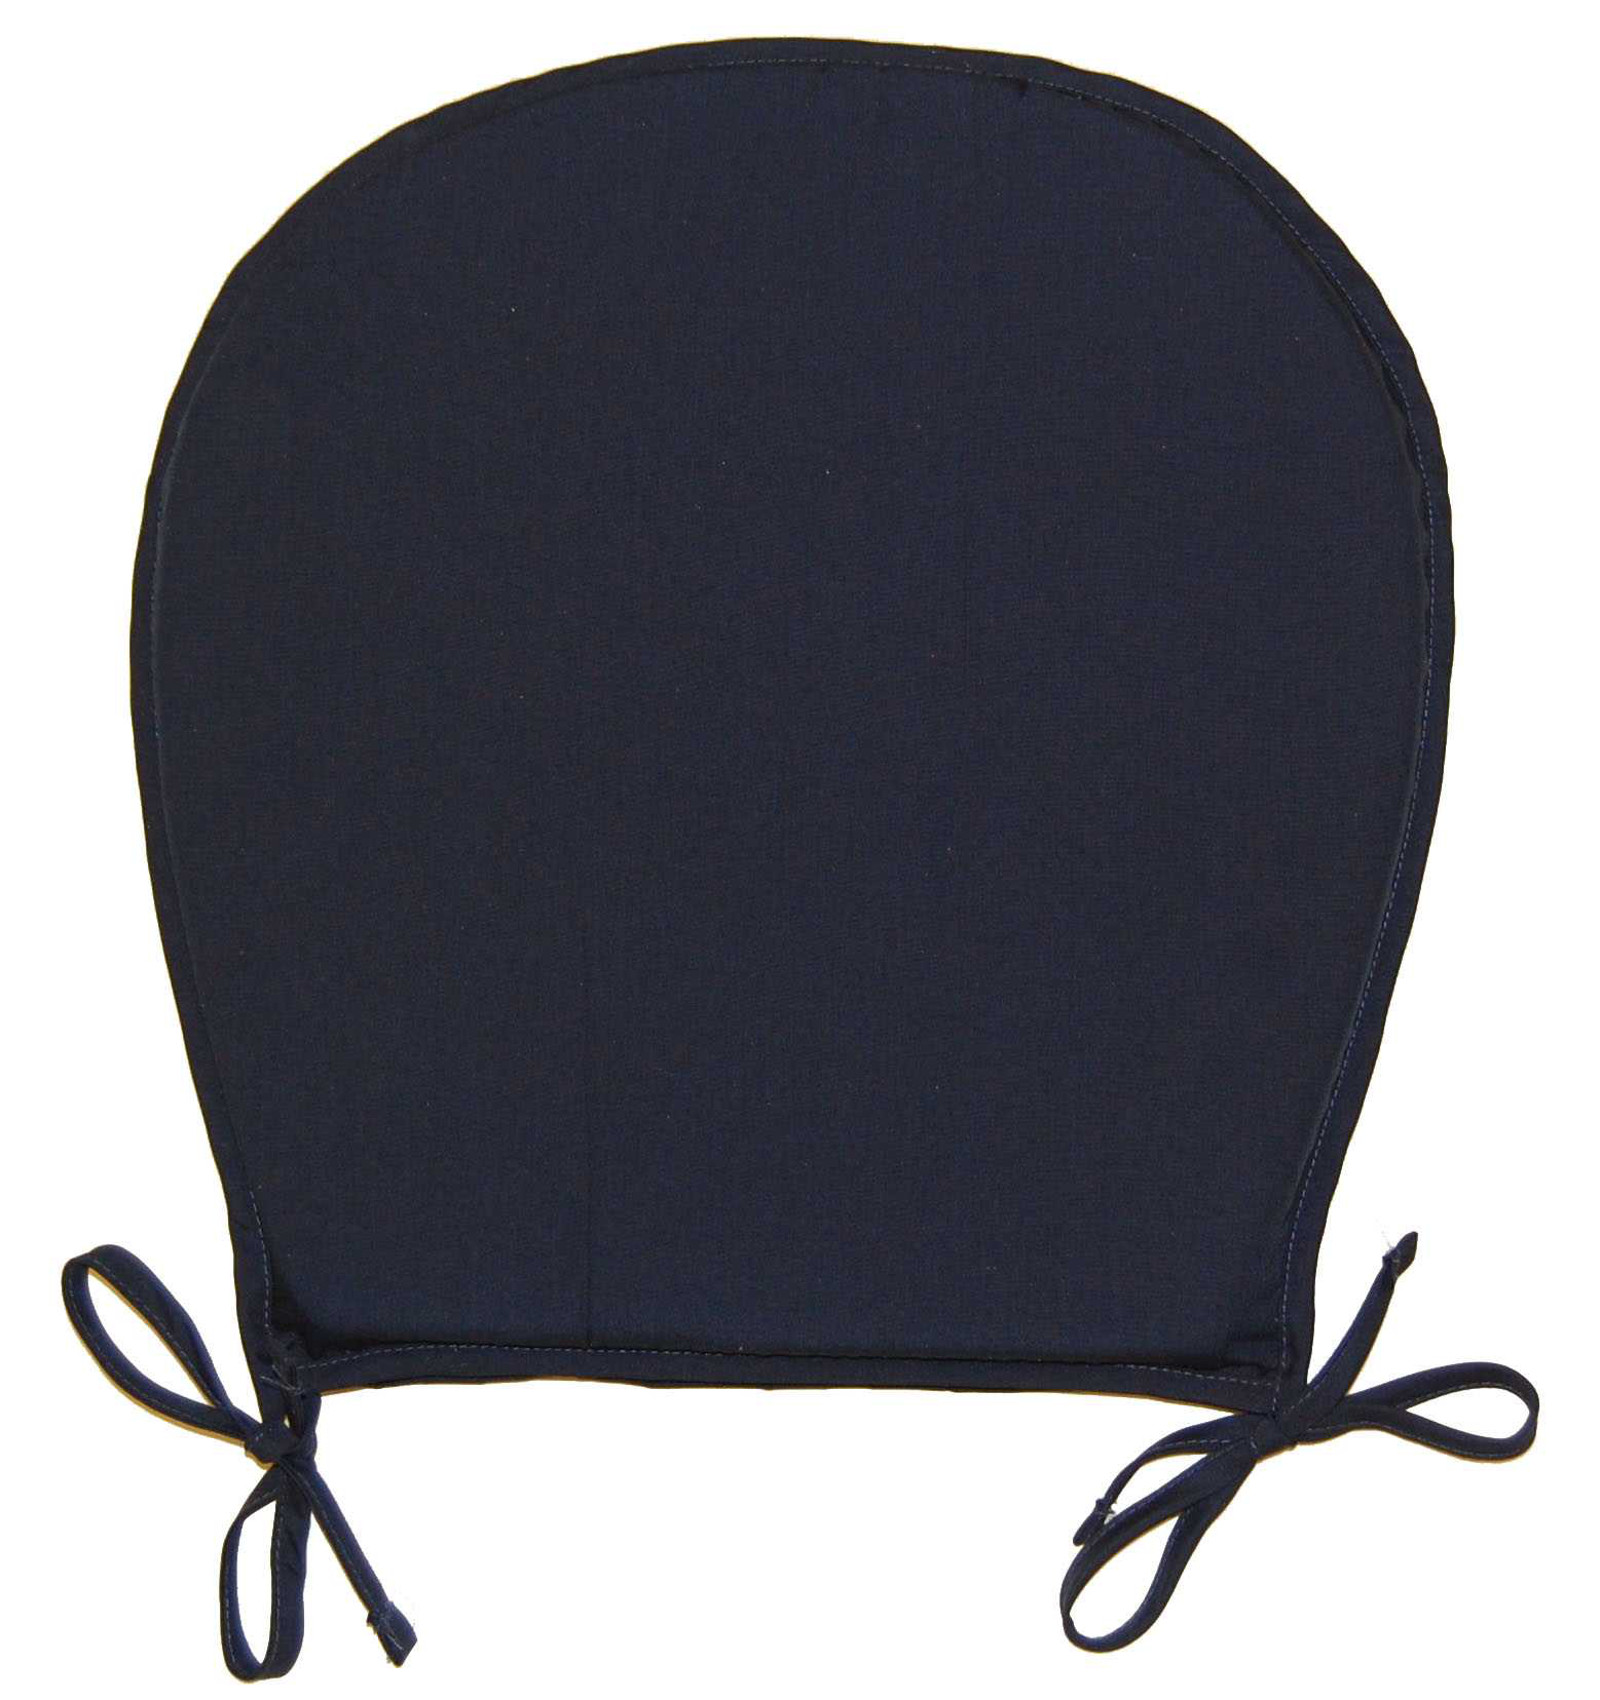 about chair seat pads plain round kitchen garden furniture cushion pad